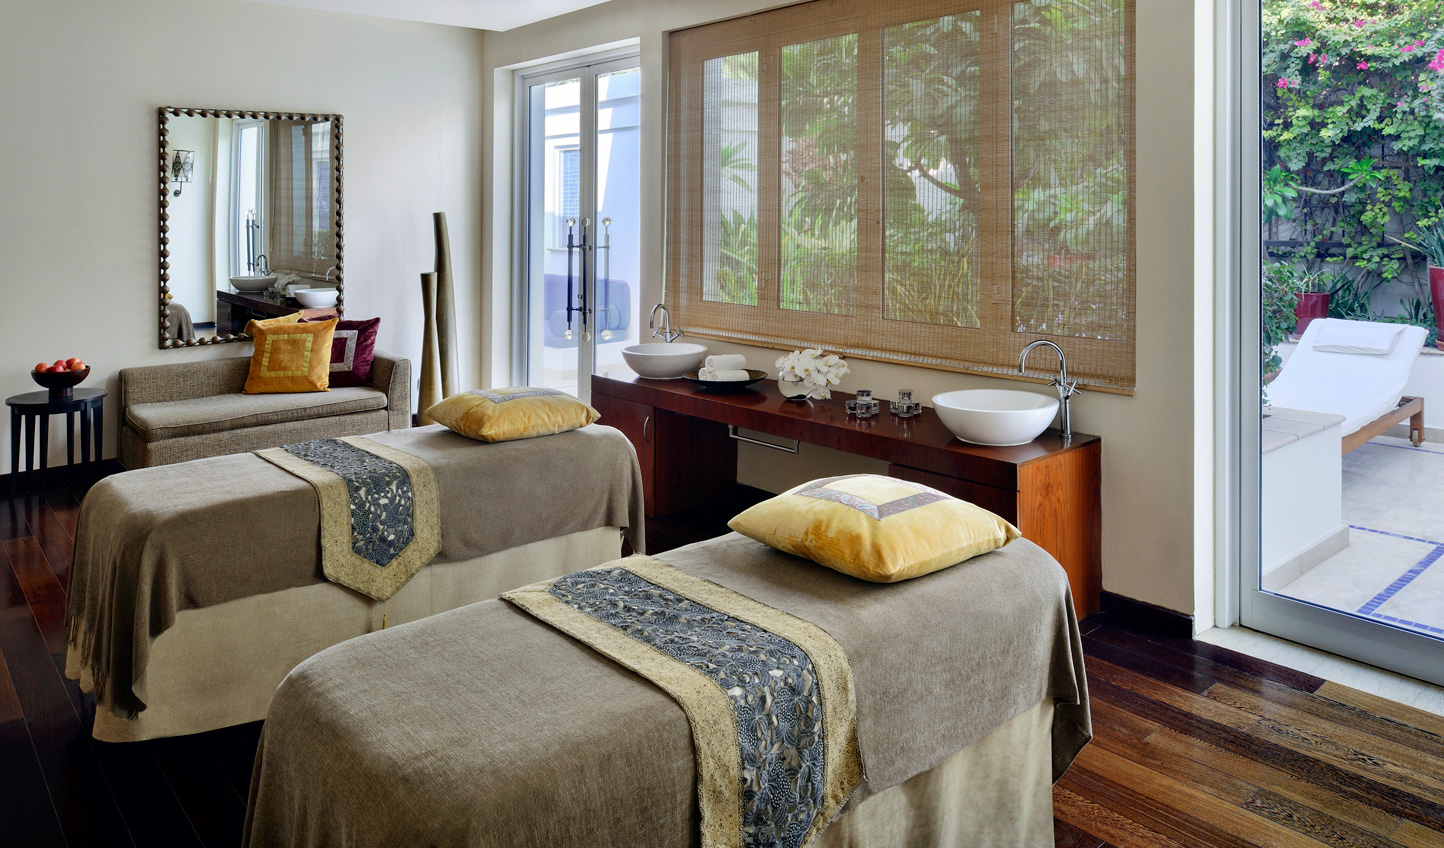 Lulled by the tranquility of the Creek, escape to Amara Spa